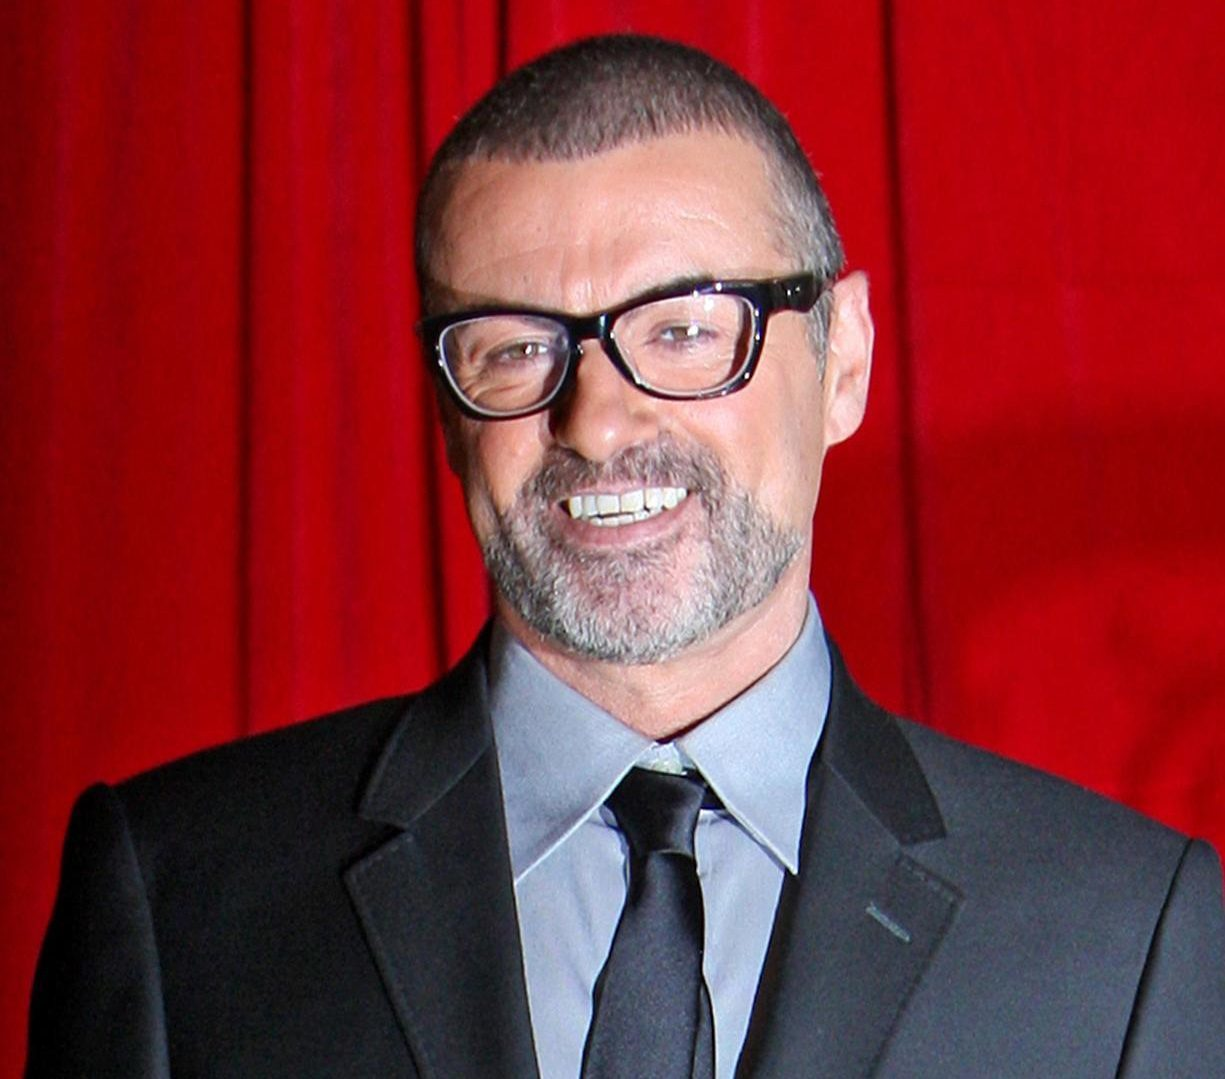 George Michael, who died of natural causes - dilated cardiomyopathy with myocarditis and fatty liver - Darren Salter, senior coroner for Oxfordshire has said. (Chris Radburn/PA Wire)